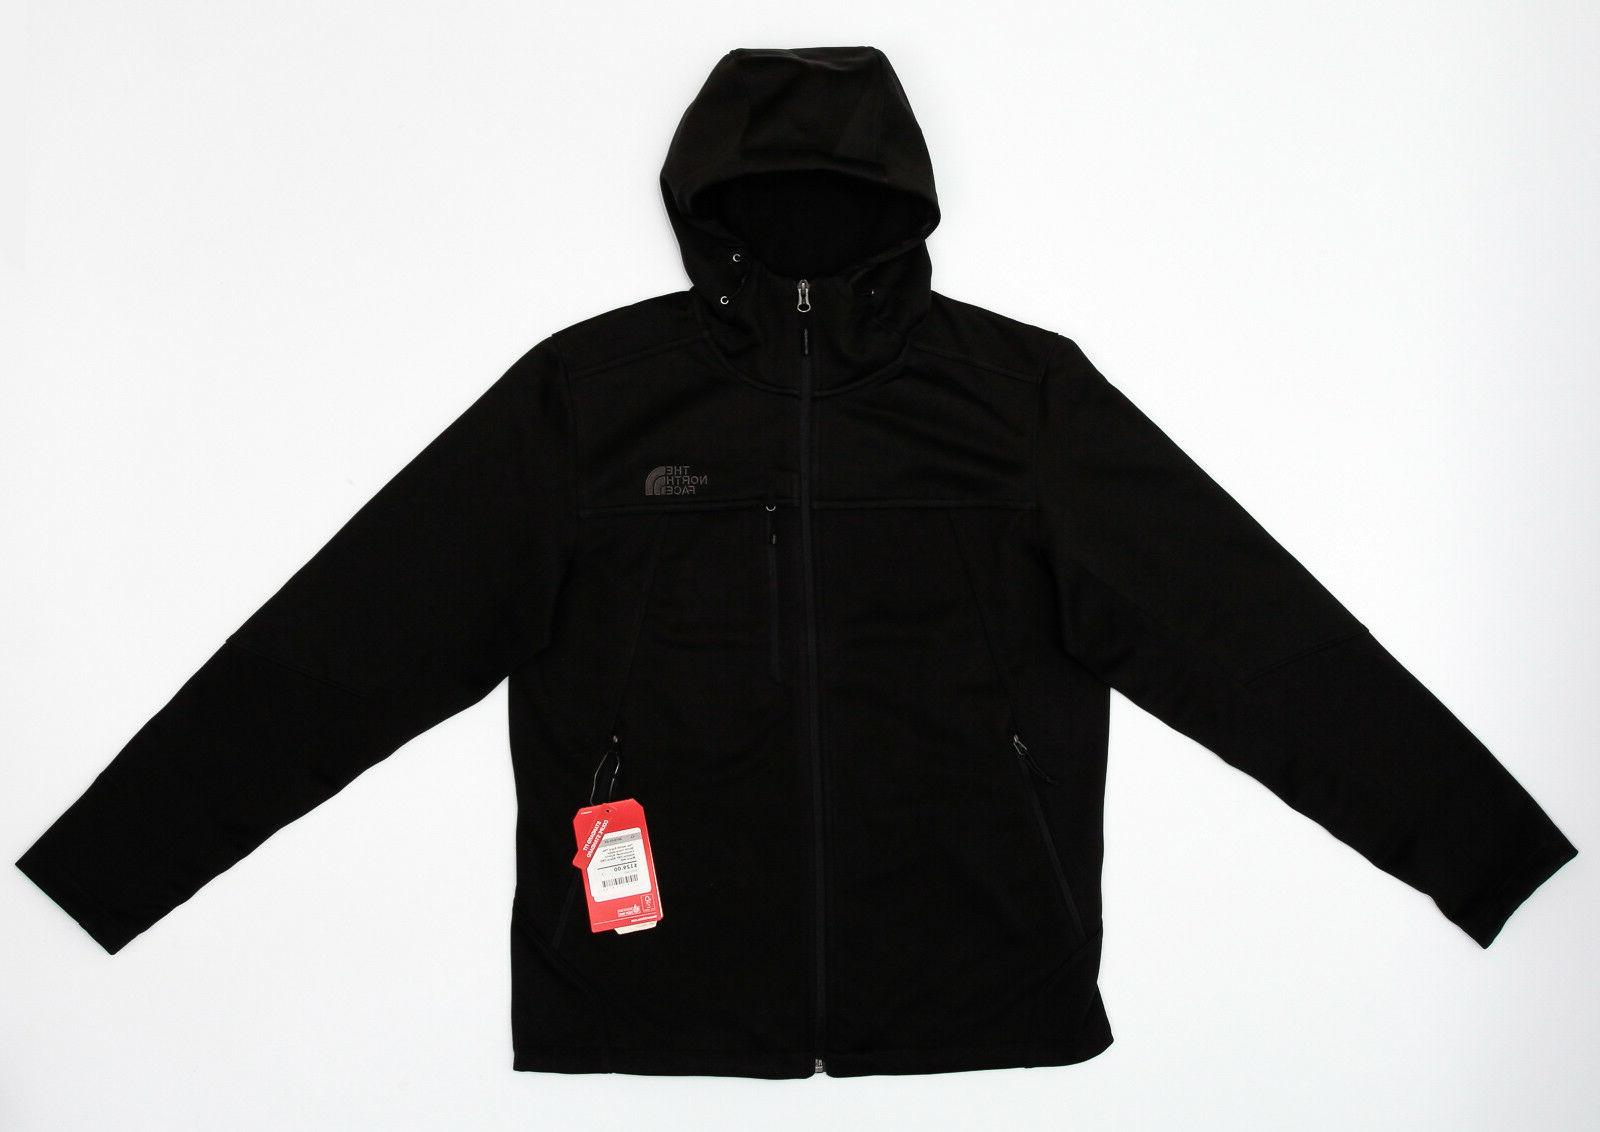 apex canyonwall hybrid tnf black hoodie jacket